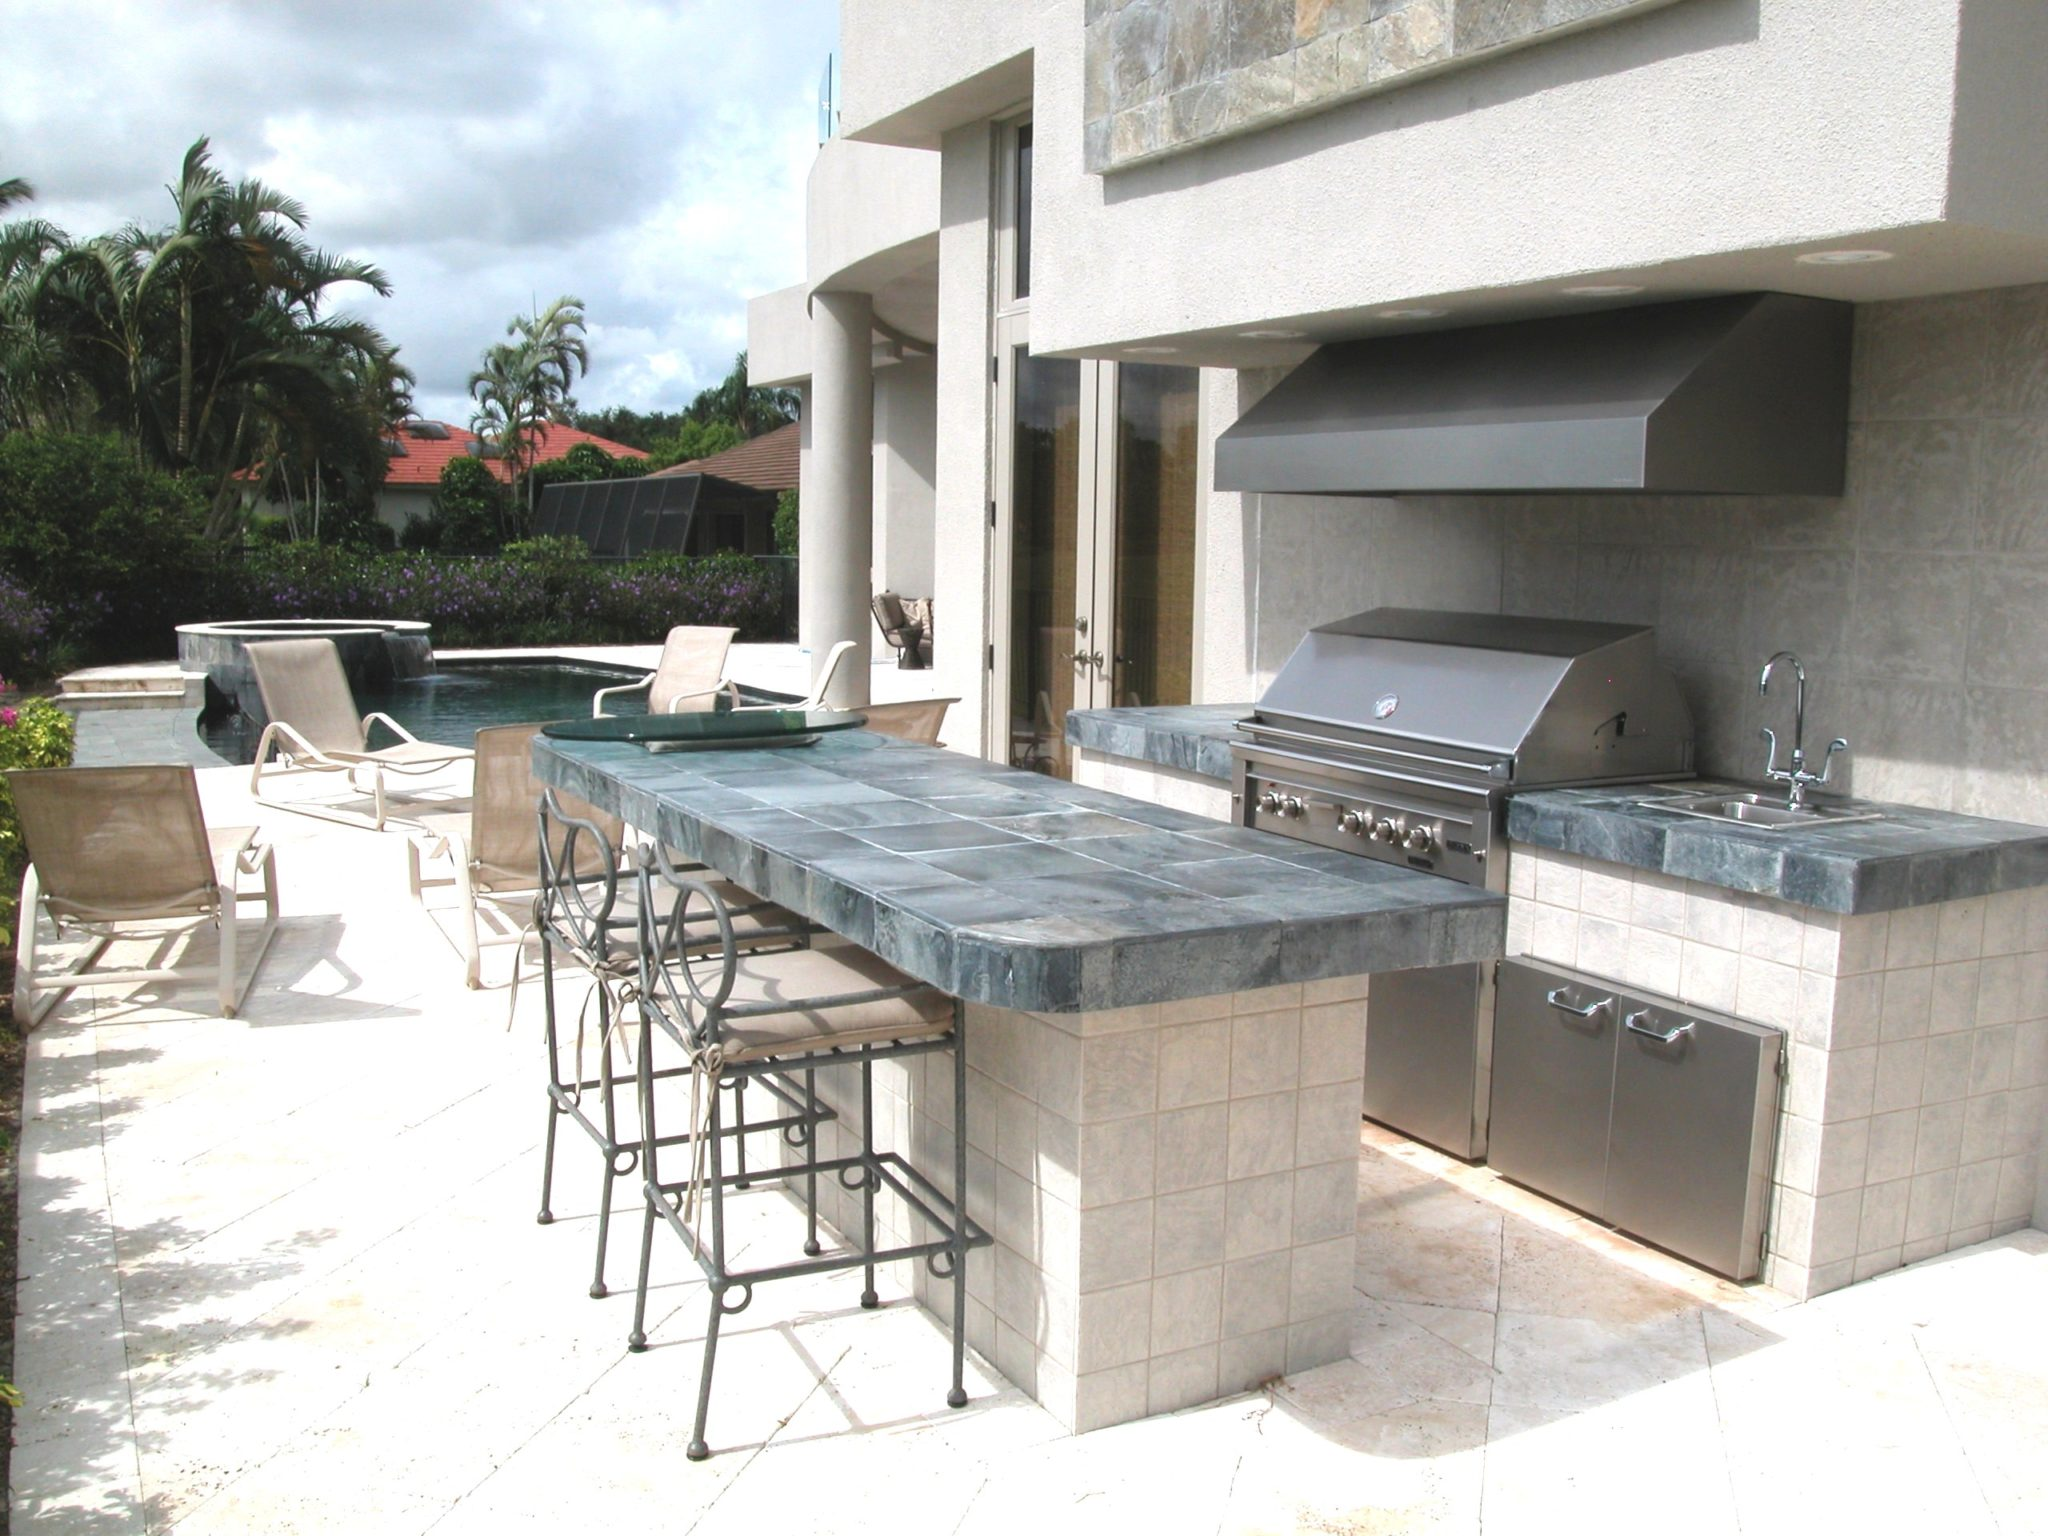 Outdoor kitchen with dynamic style and harmonious appearance